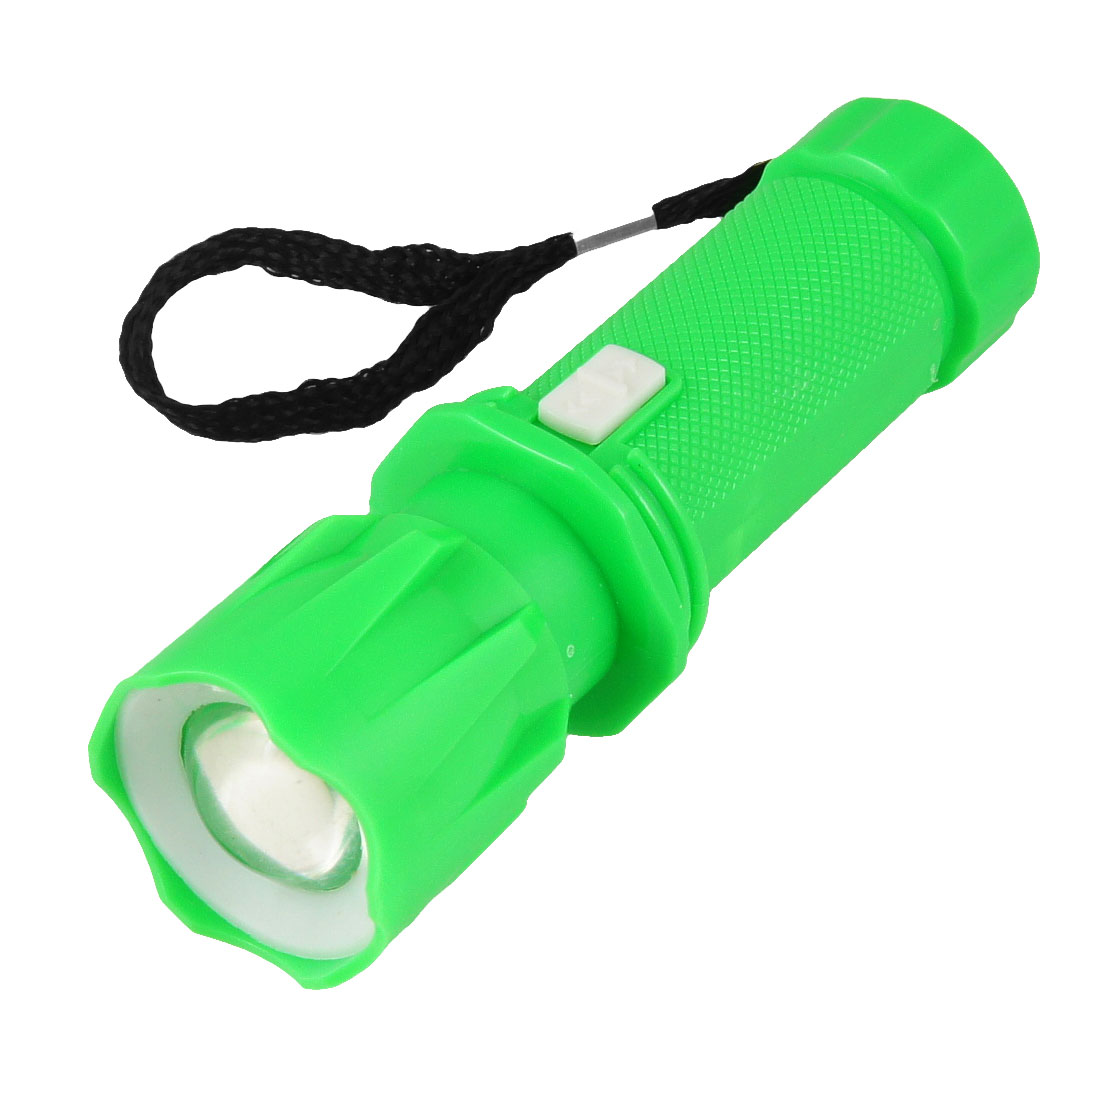 Unique Bargains Portable String Flashlight Battery Powered Adjustable Focus Torch Green